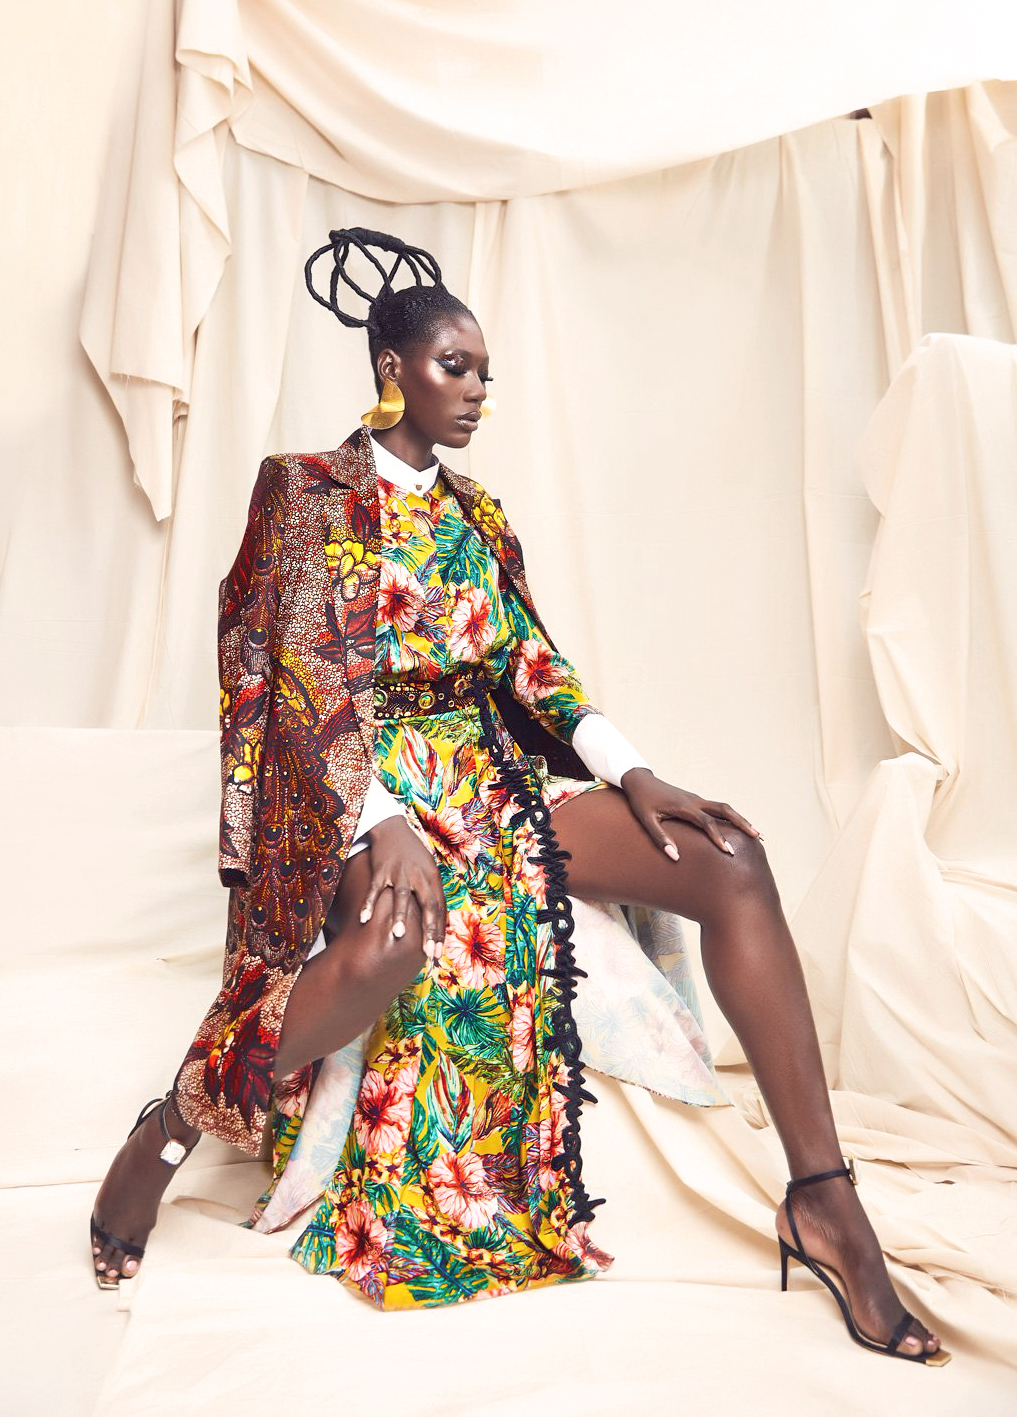 AFRICAN FASHION STYLE MAGAZINE - She is King AW19 by Christie Brown  - Look book with  Koro Amy International Model from Ivory Coast - Photographer DAN NGU - Media Partner DN AFRICA - STUDIO 24 NIGERIA - STUDIO 24 INTERNATIONAL - Ifeanyi Christopher Oputa MD AND CEO OF COLVI LIMITED AND STUDIO 24 - CHEVEUX CHERIE and CHEVEUX CHERIE STUDIO BY MARIEME DUBOZ- Fashion Editor Nahomie NOOR COULIBALY